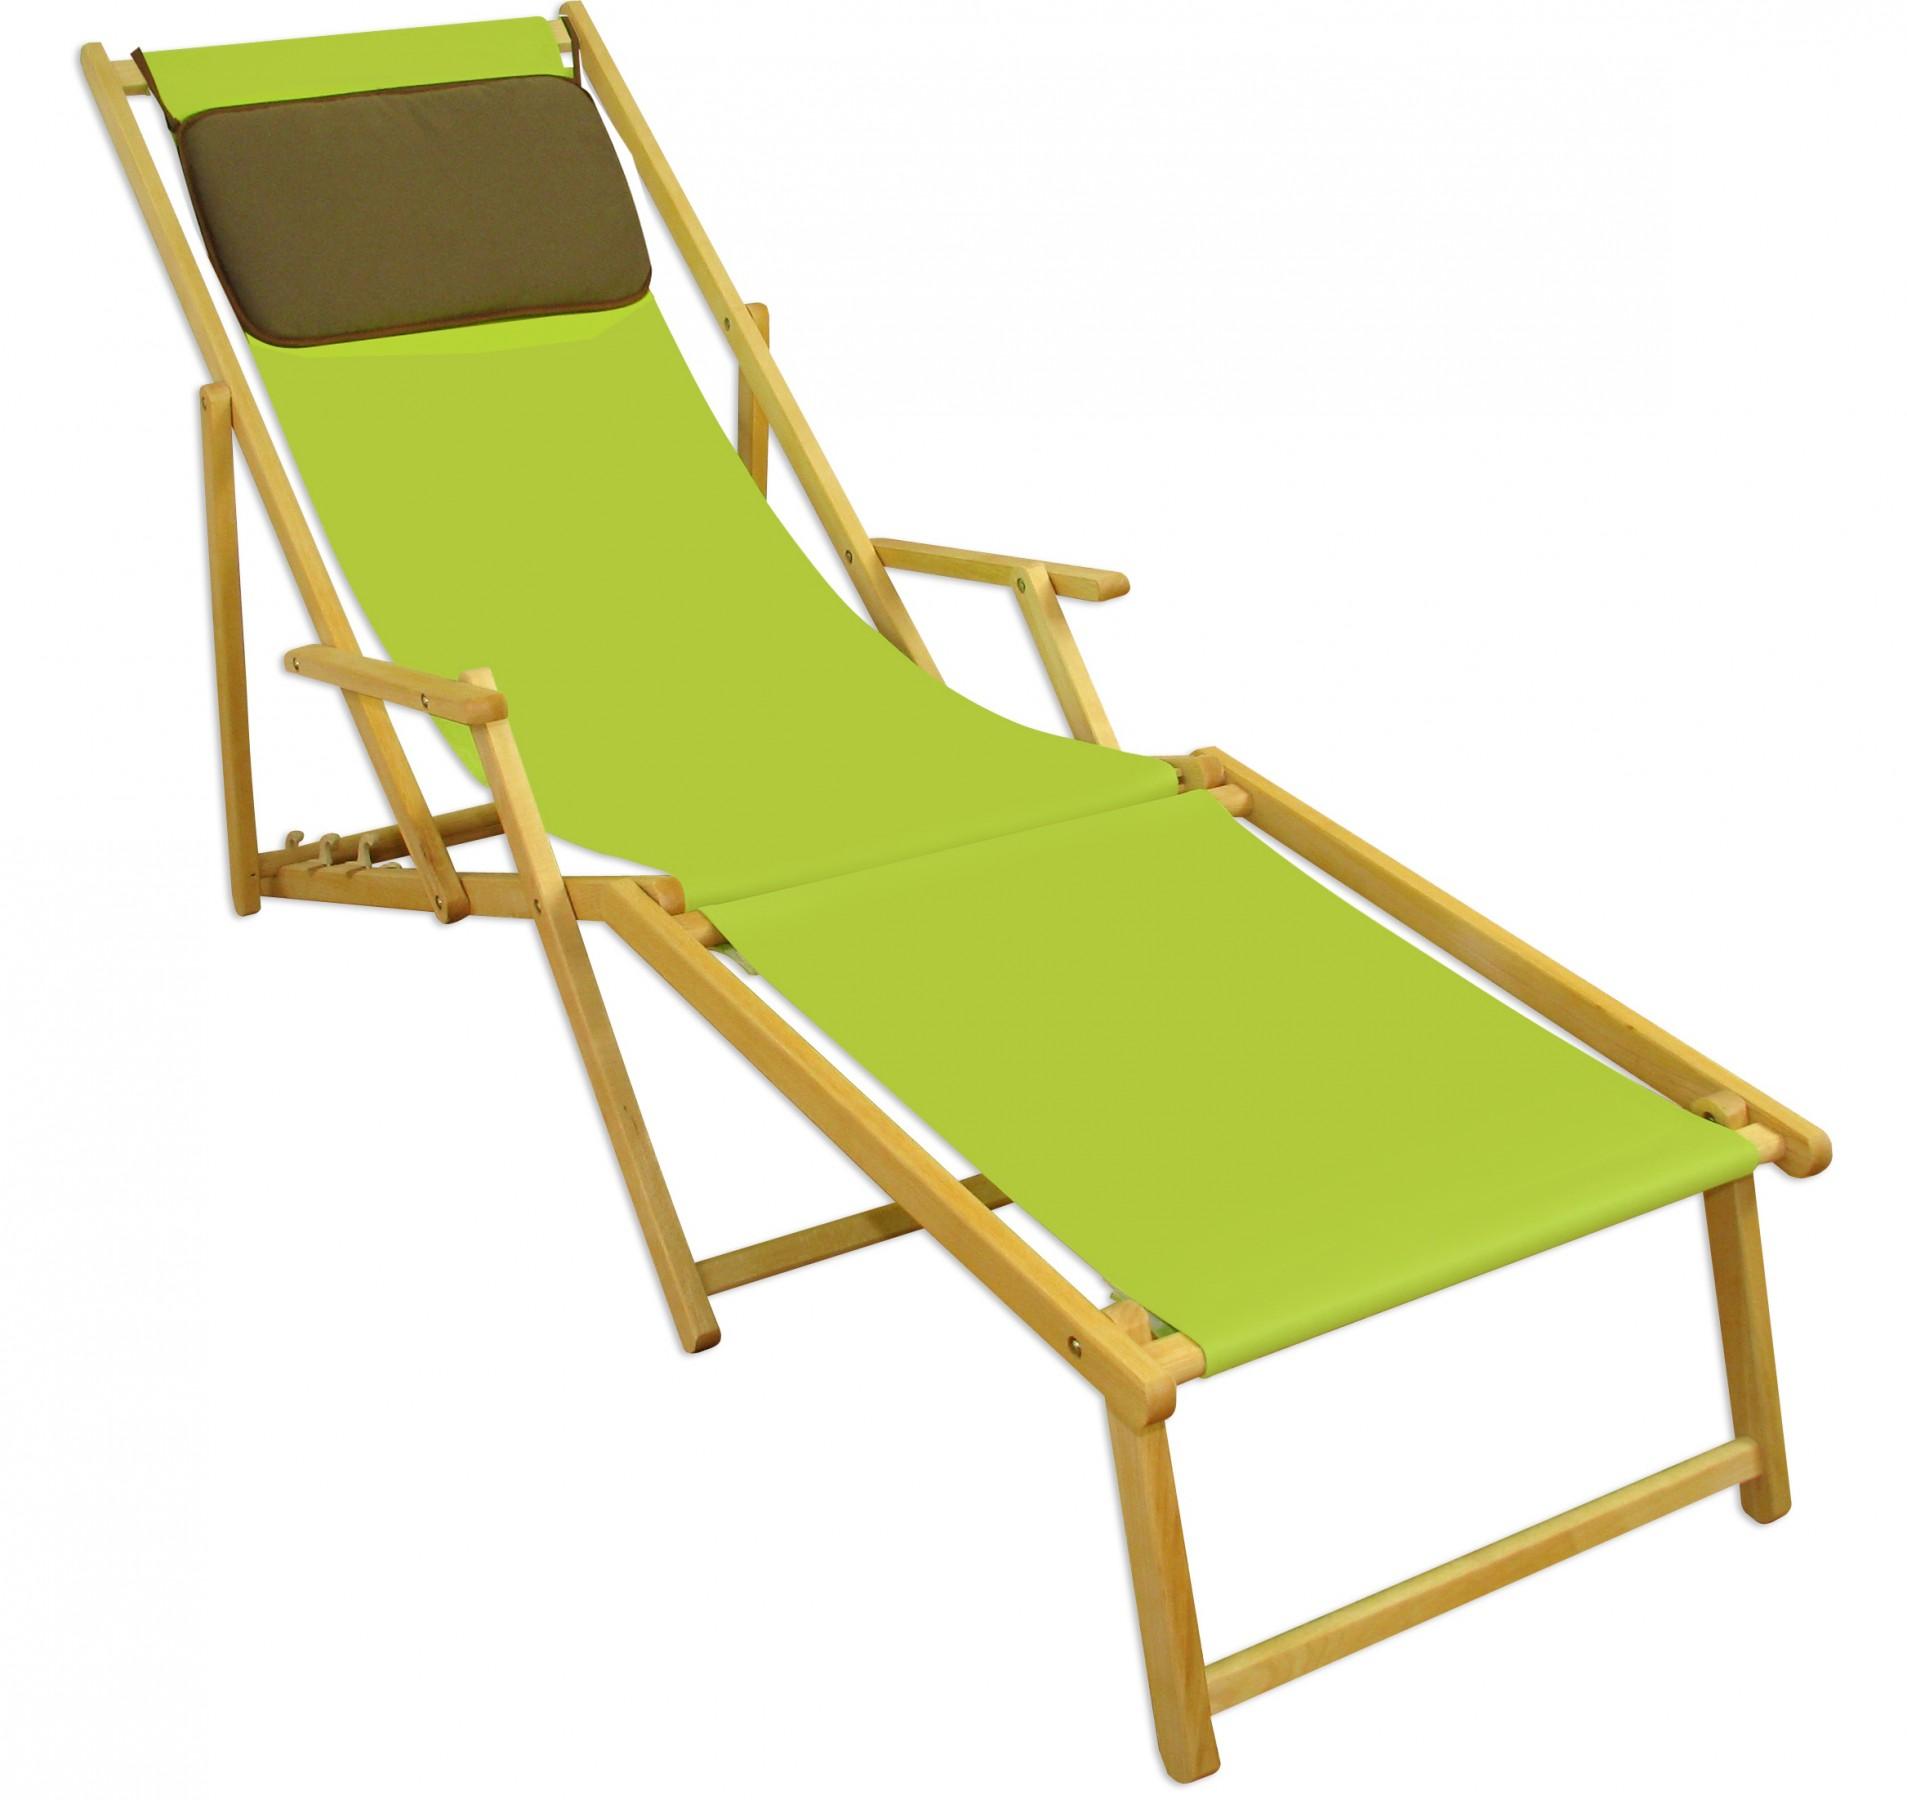 liegestuhl pistazie fu ablage kissen deckchair klappbar sonnenliege holz gartenliege 10 306nfkd. Black Bedroom Furniture Sets. Home Design Ideas